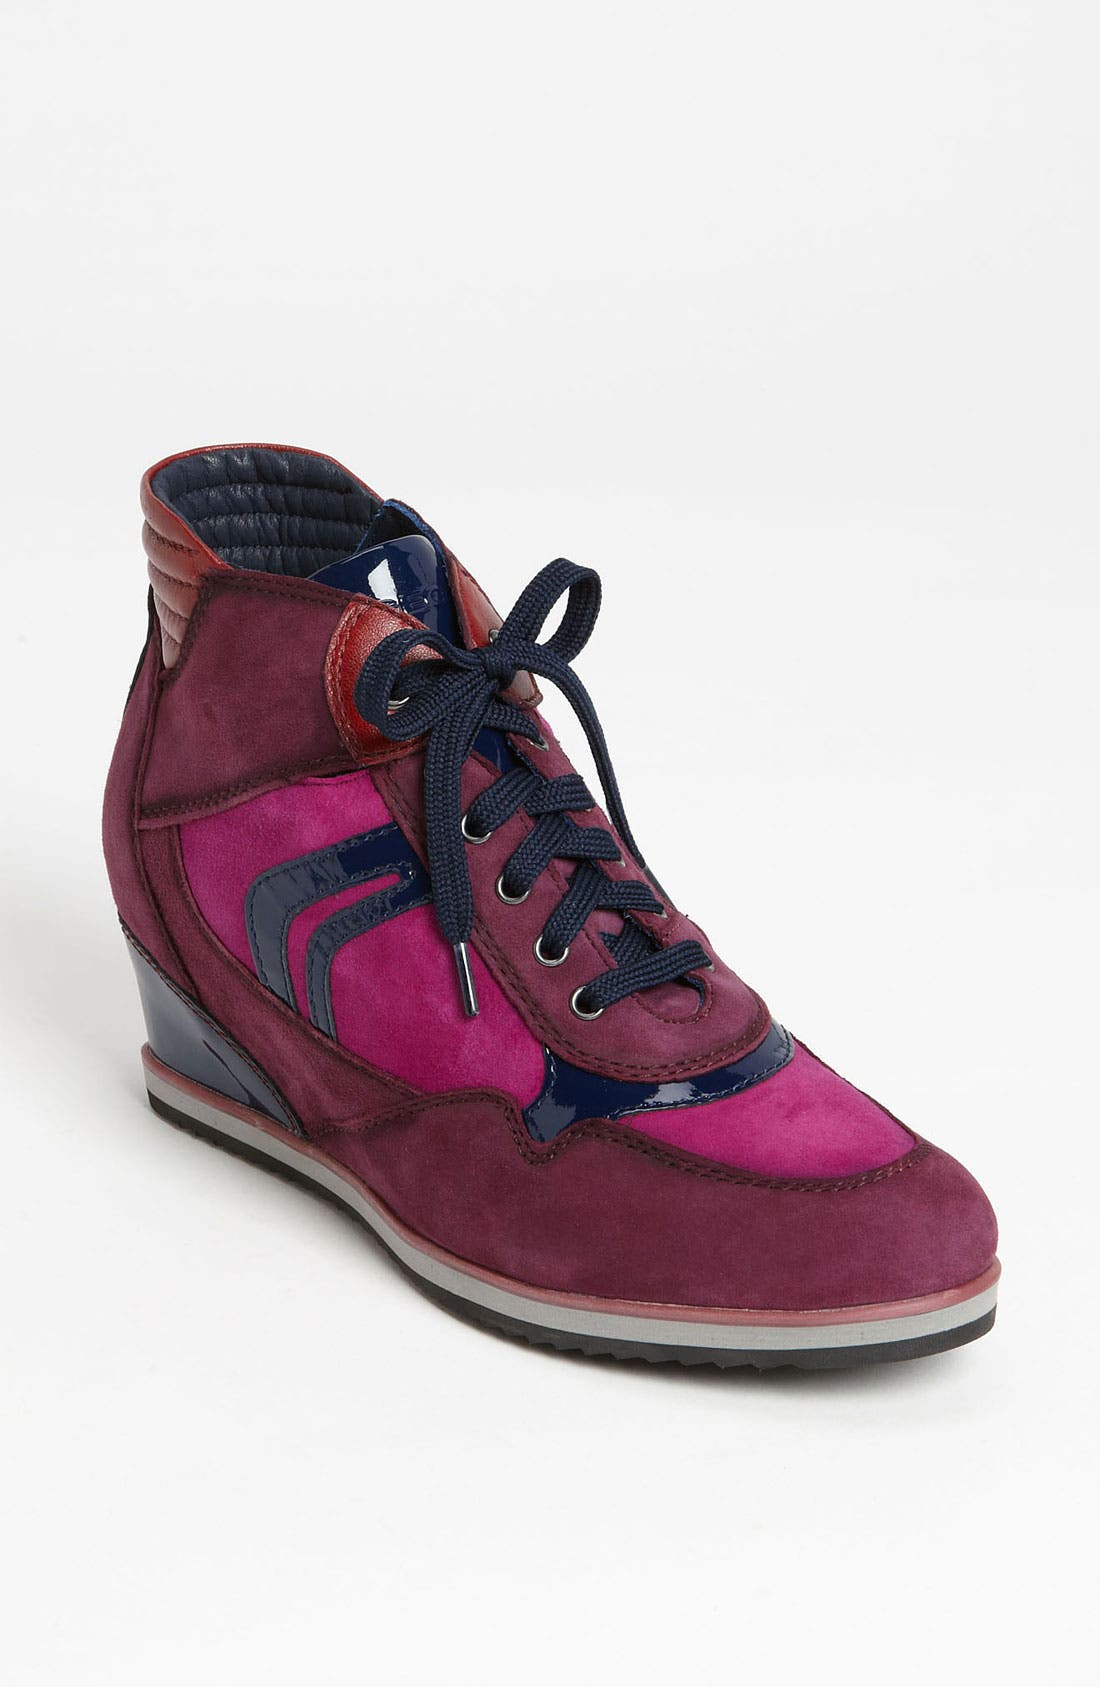 Alternate Image 1 Selected - Geox 'D Illusion' High Top Wedge Sneaker